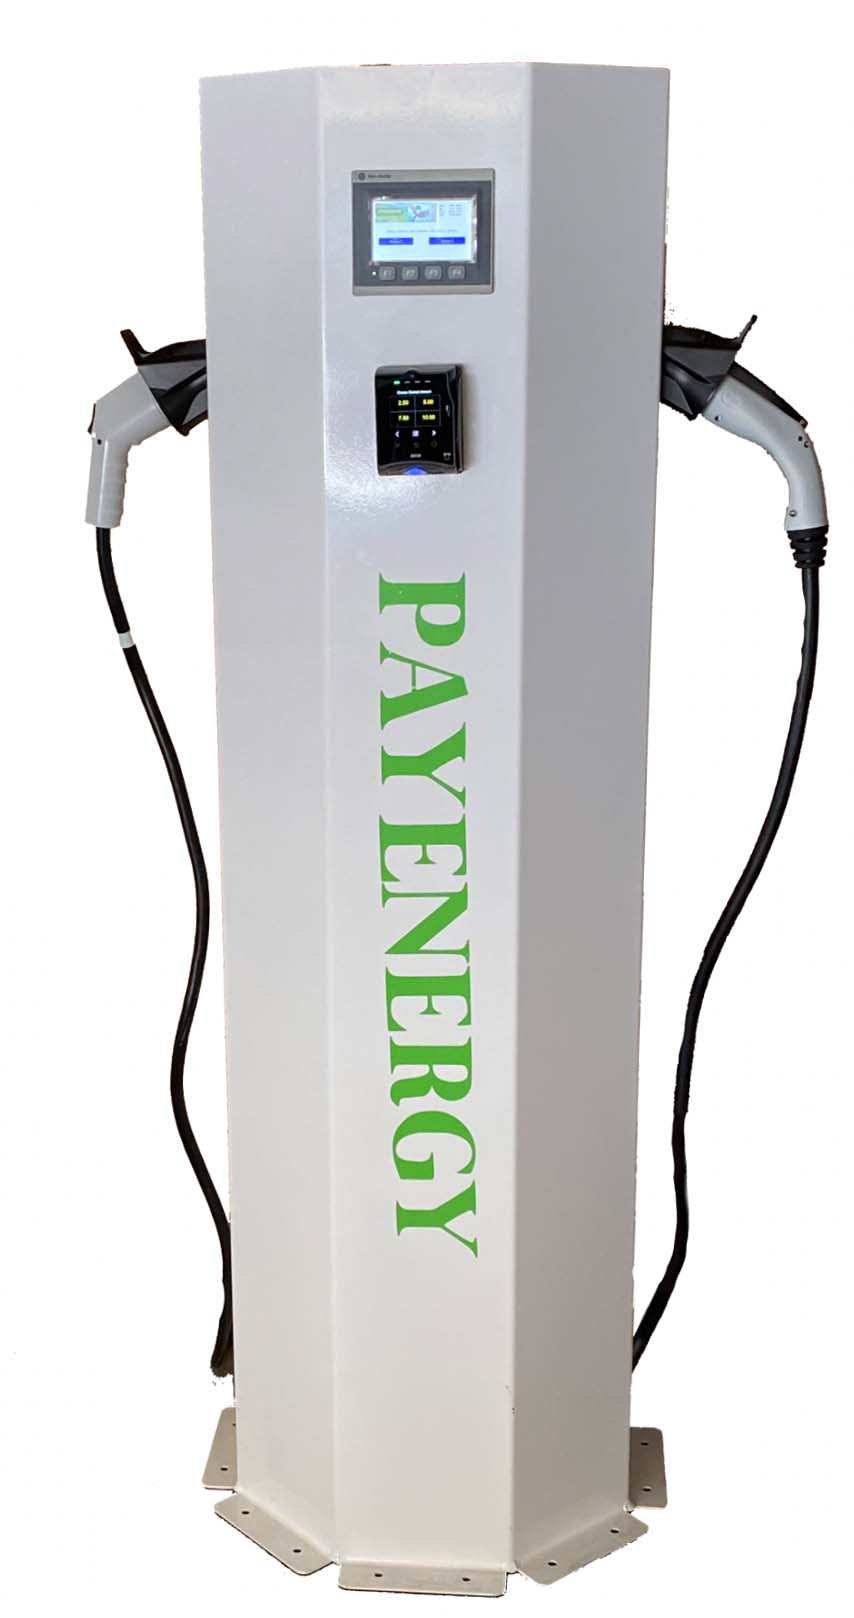 PE200 - PayEnergy Dual Level2 Pay Stand